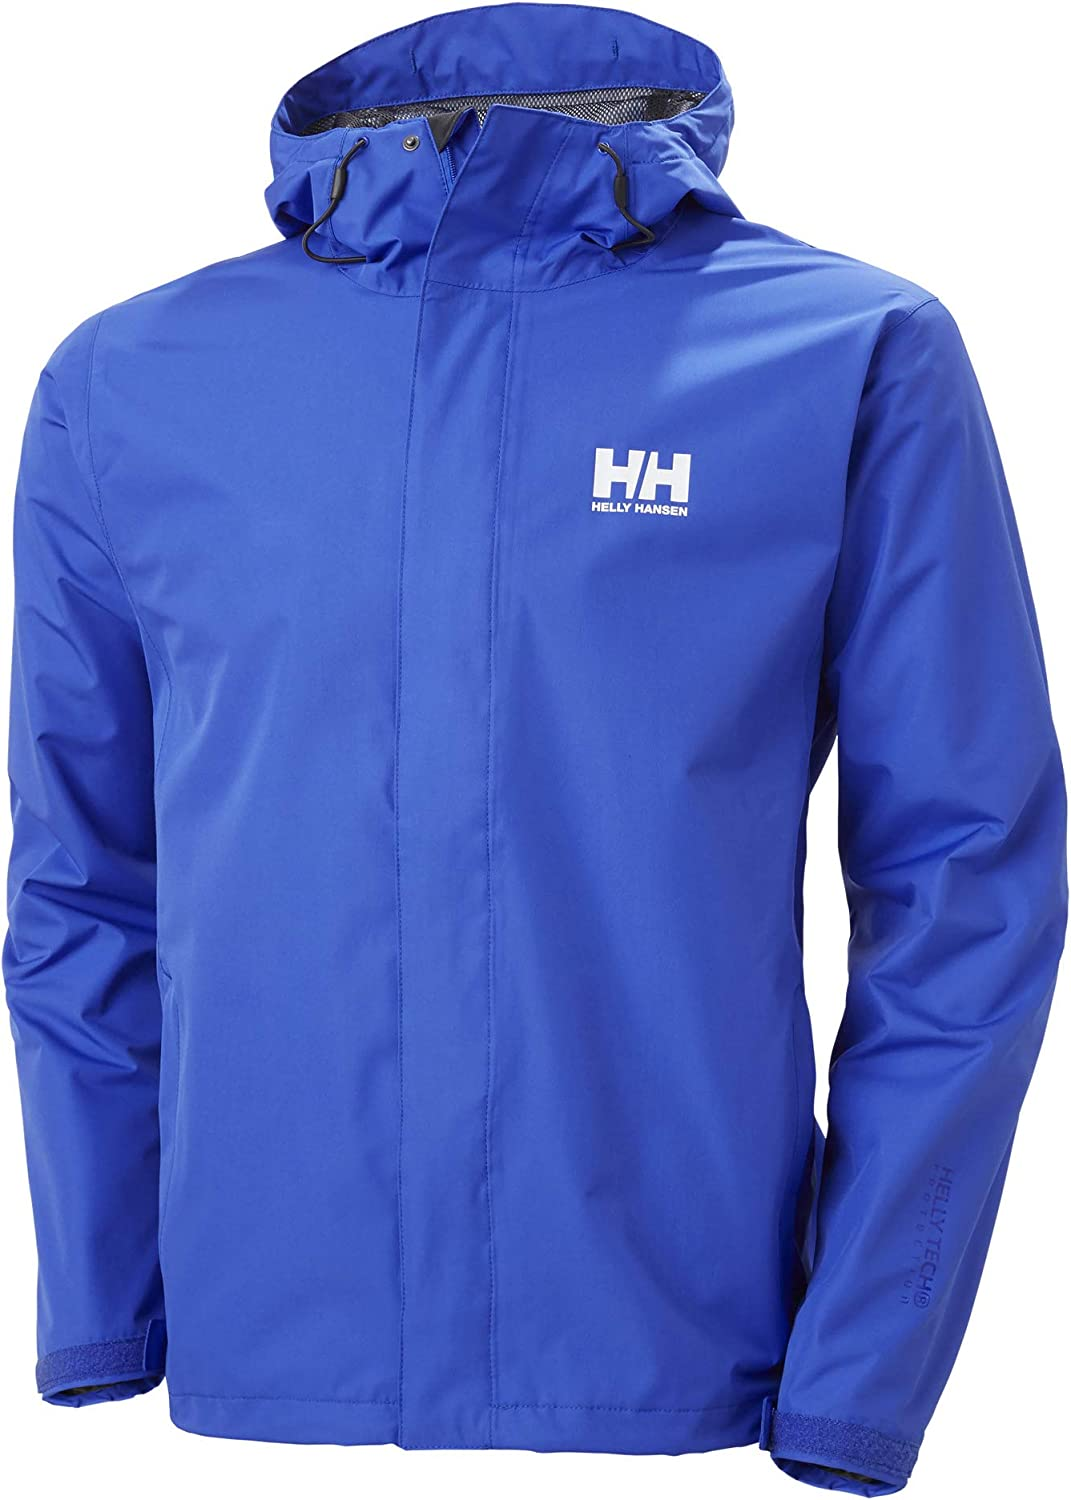 Helly-Hansen Men's Seven J Waterproof Windproof Breathable Rain Jacket